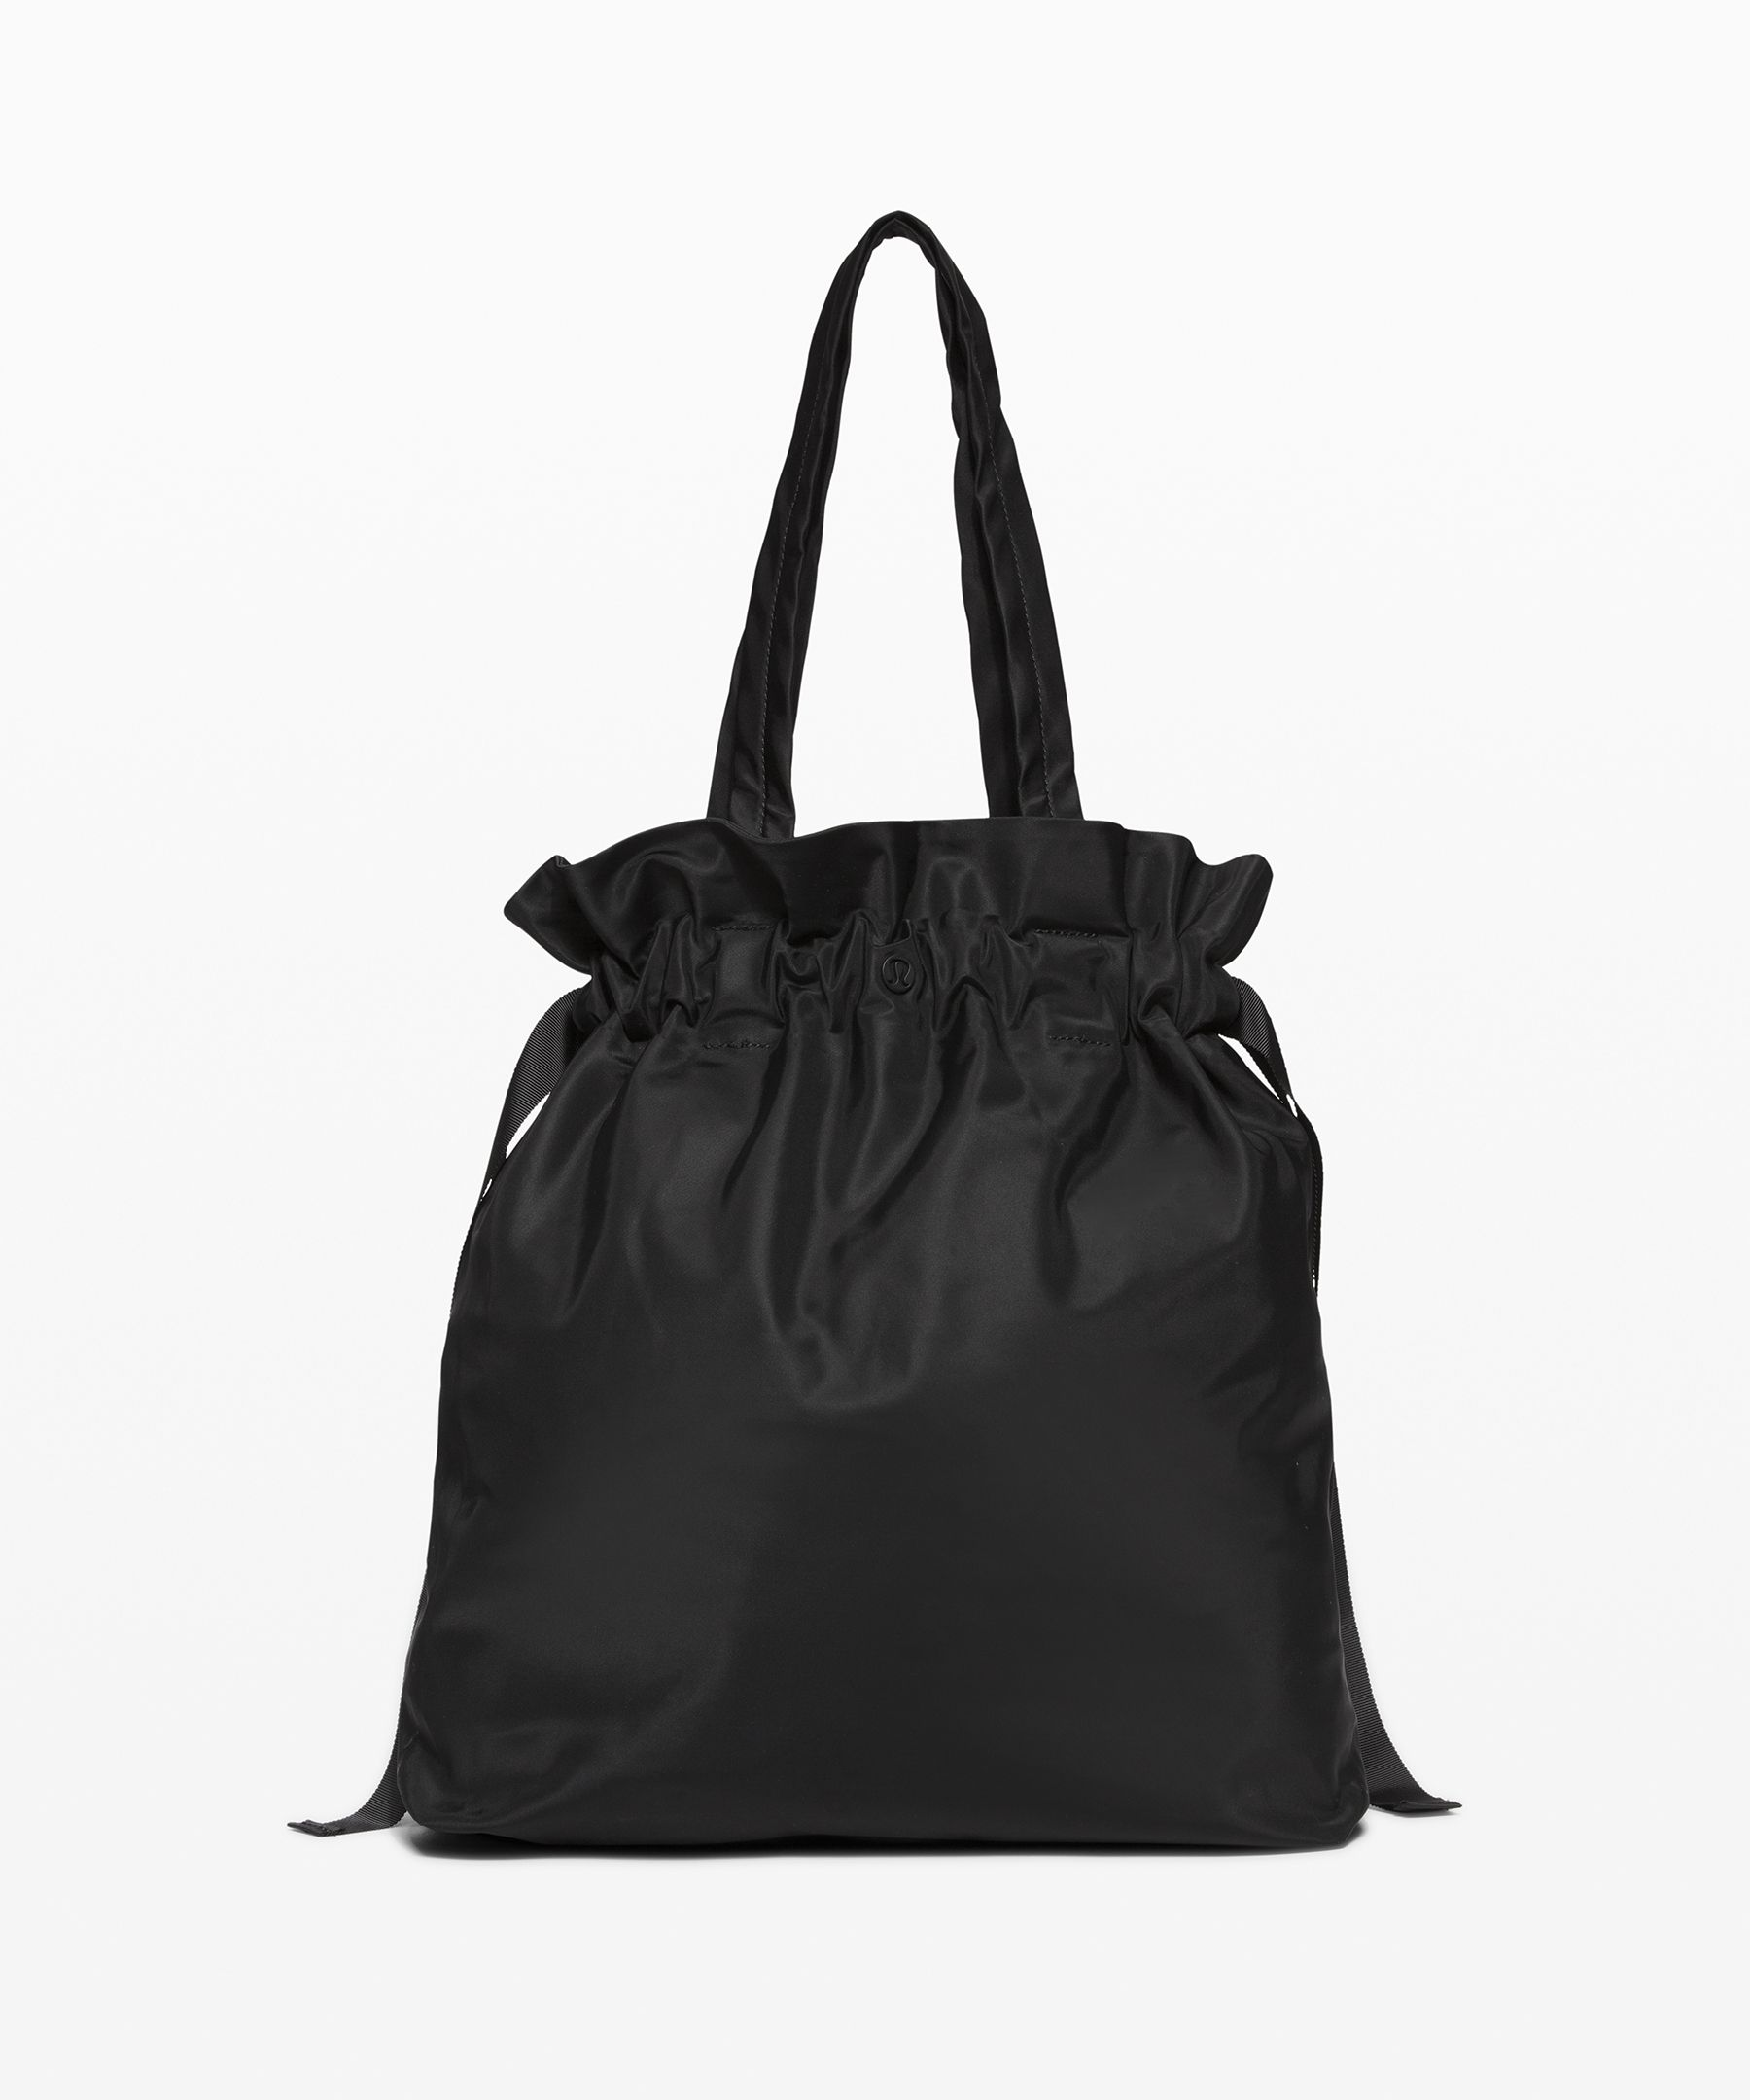 This lightweight, effortless  tote has a drawstring top so  you can dash to class with  your essentials securely in tow.